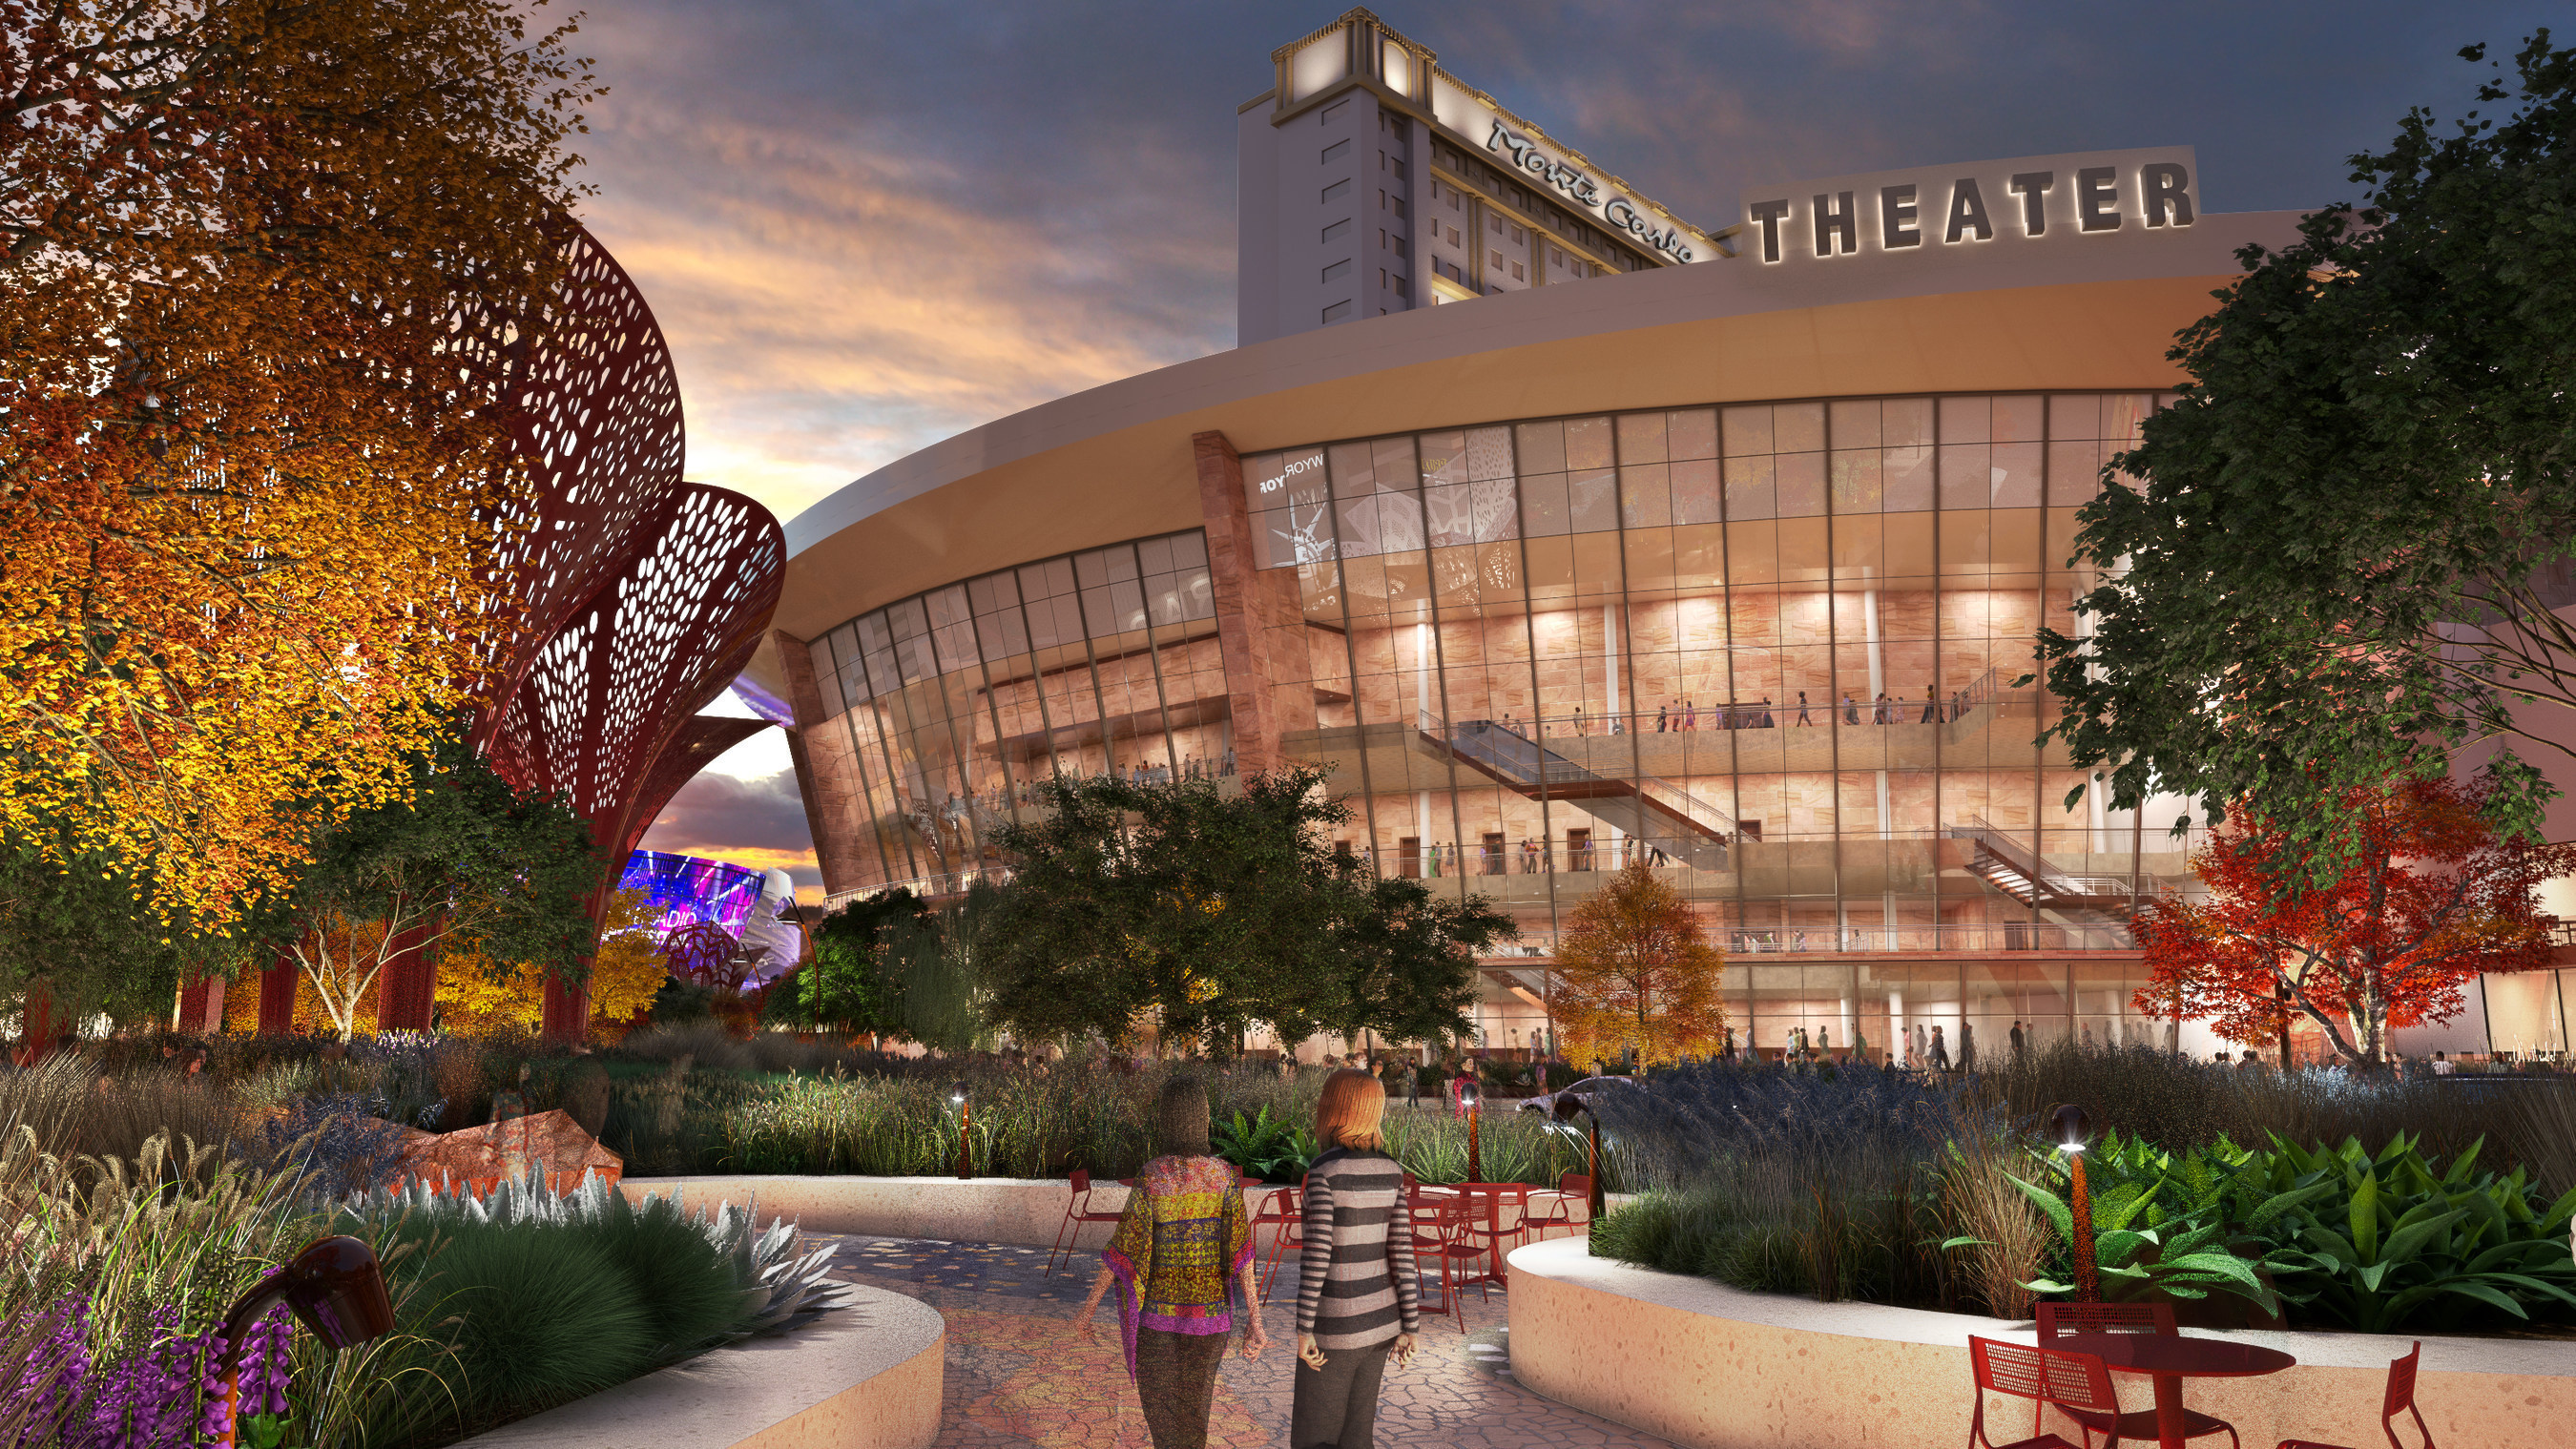 Monte Carlo Resort and Casino will be home to an approximately 5,000-seat theater featuring a robust calendar of special engagements by many of the music industry's most-celebrated performers.